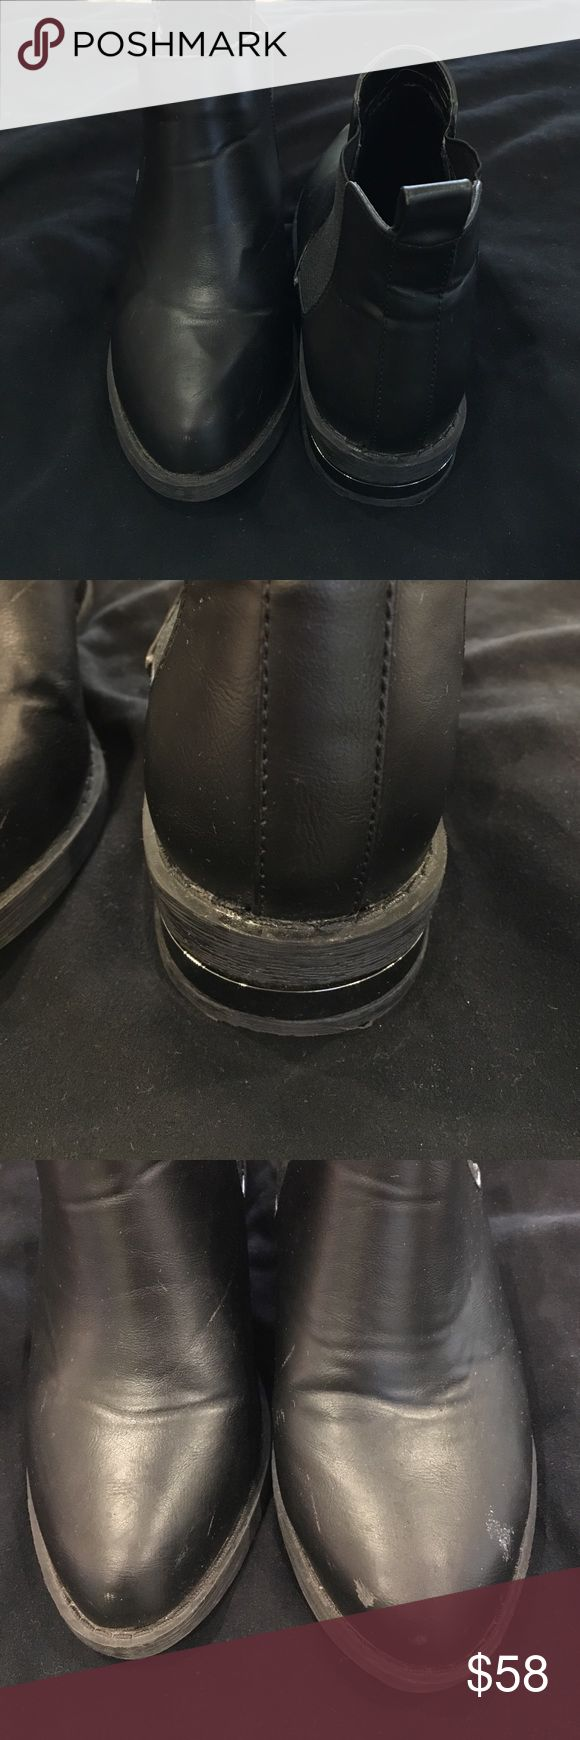 River Island Black Combat Booties Black booties with metallic detail on heel. In good preloved condition River Island Shoes Ankle Boots & Booties